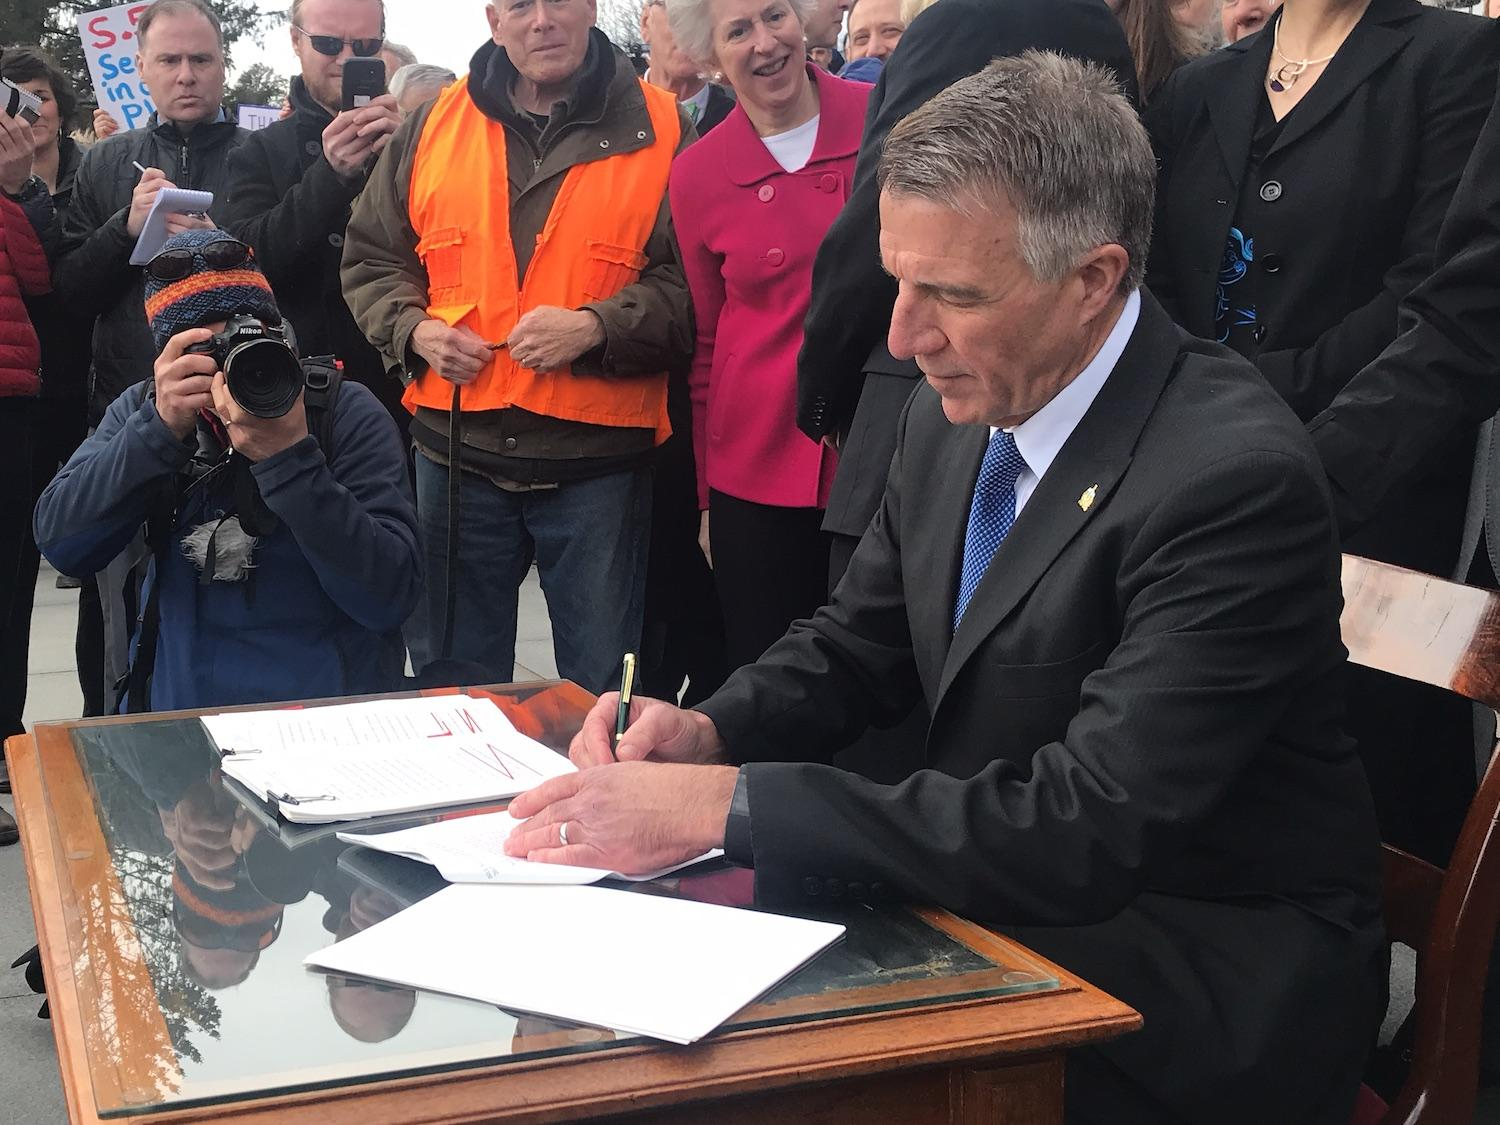 Vermont's GOP governor signs historic gun control bills